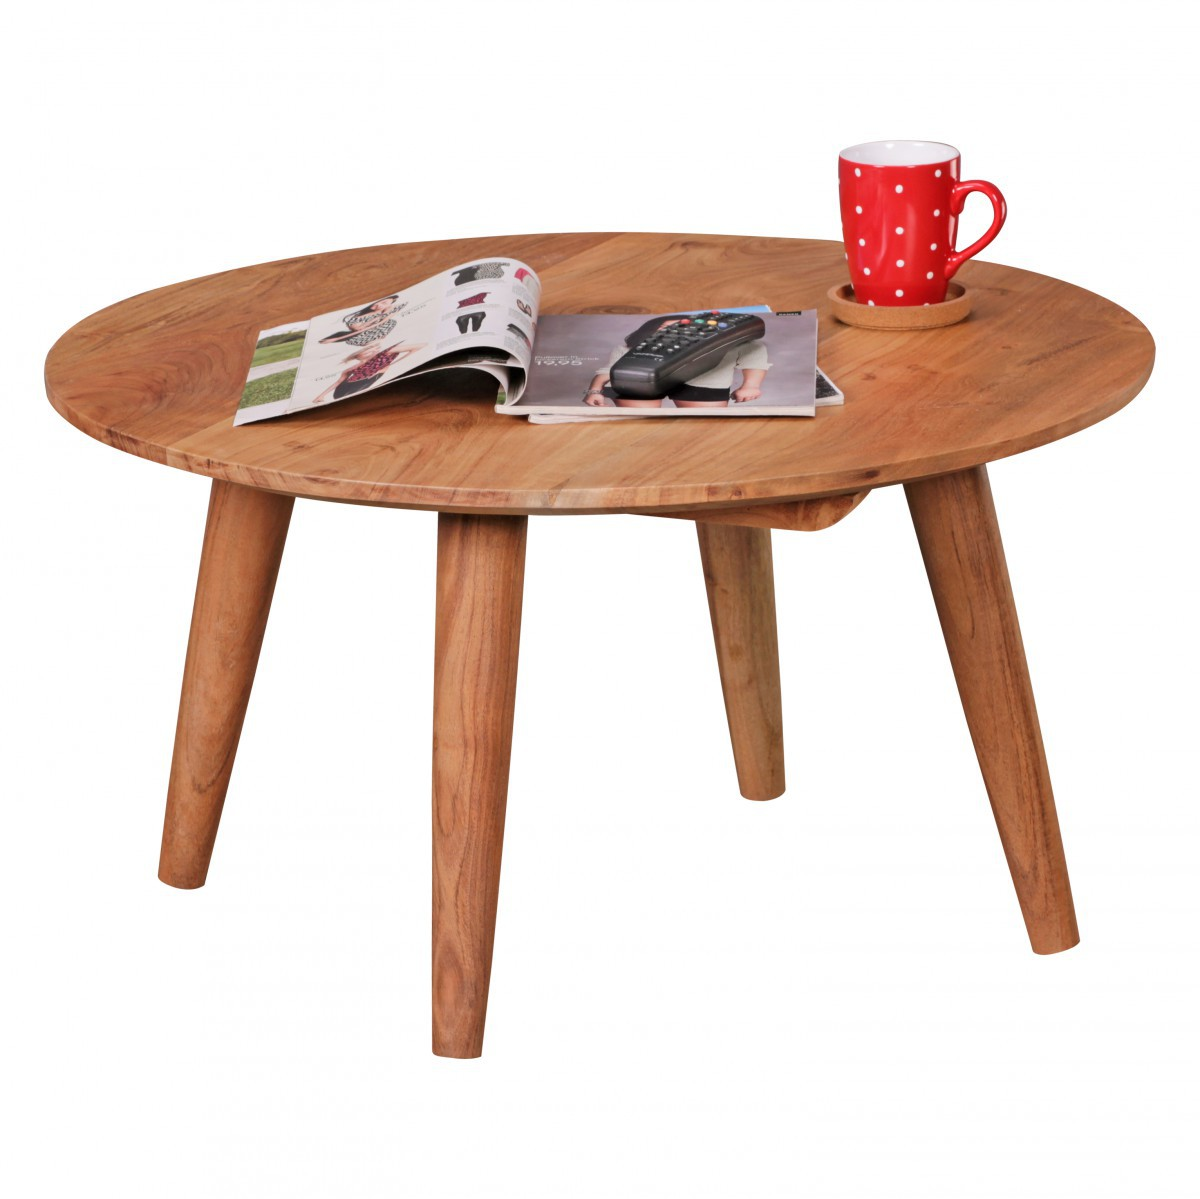 Finebuy table basse en bois massif acacia table basse ronde 75 x 40 cm ferme - Tables basses bois massif ...